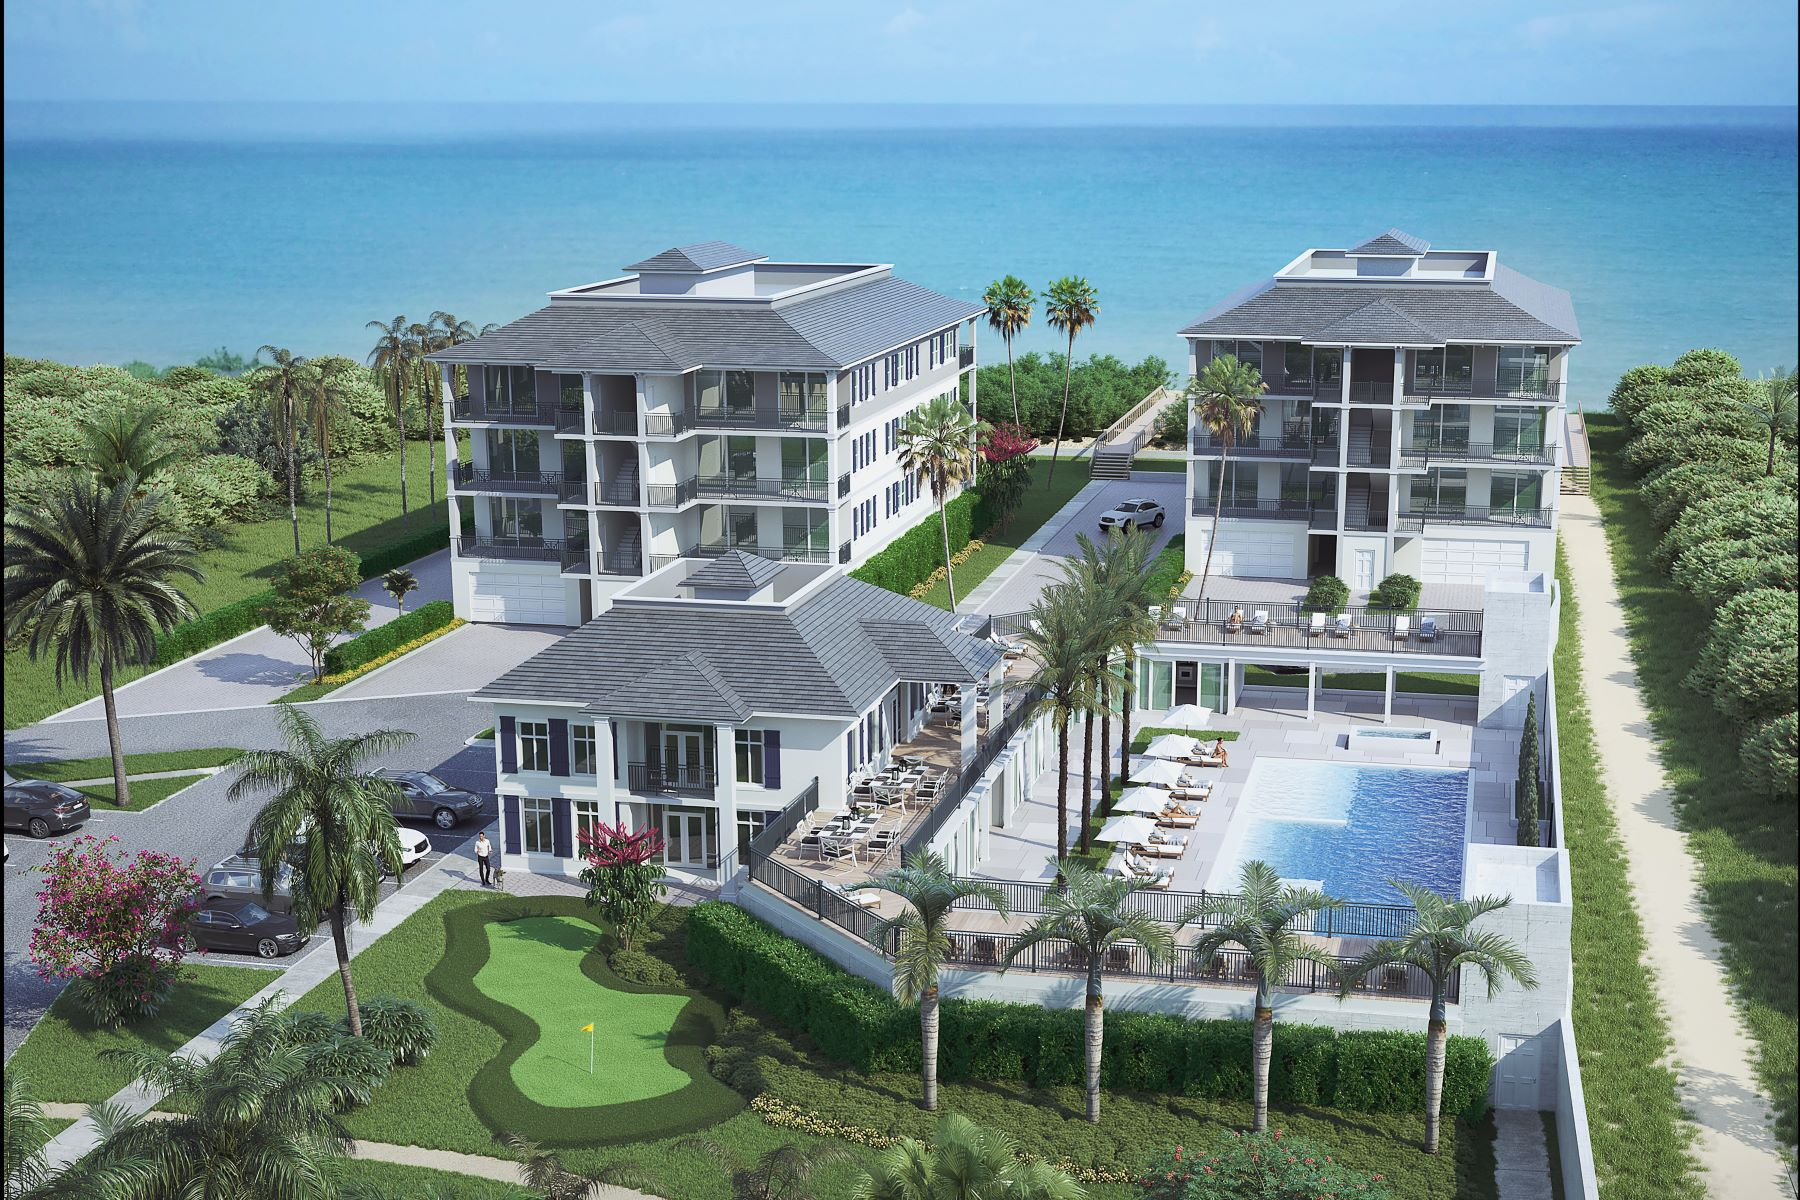 Property 용 매매 에 8050 Highway A1A PH Tower 2 Vero Beach, 플로리다 32963 미국